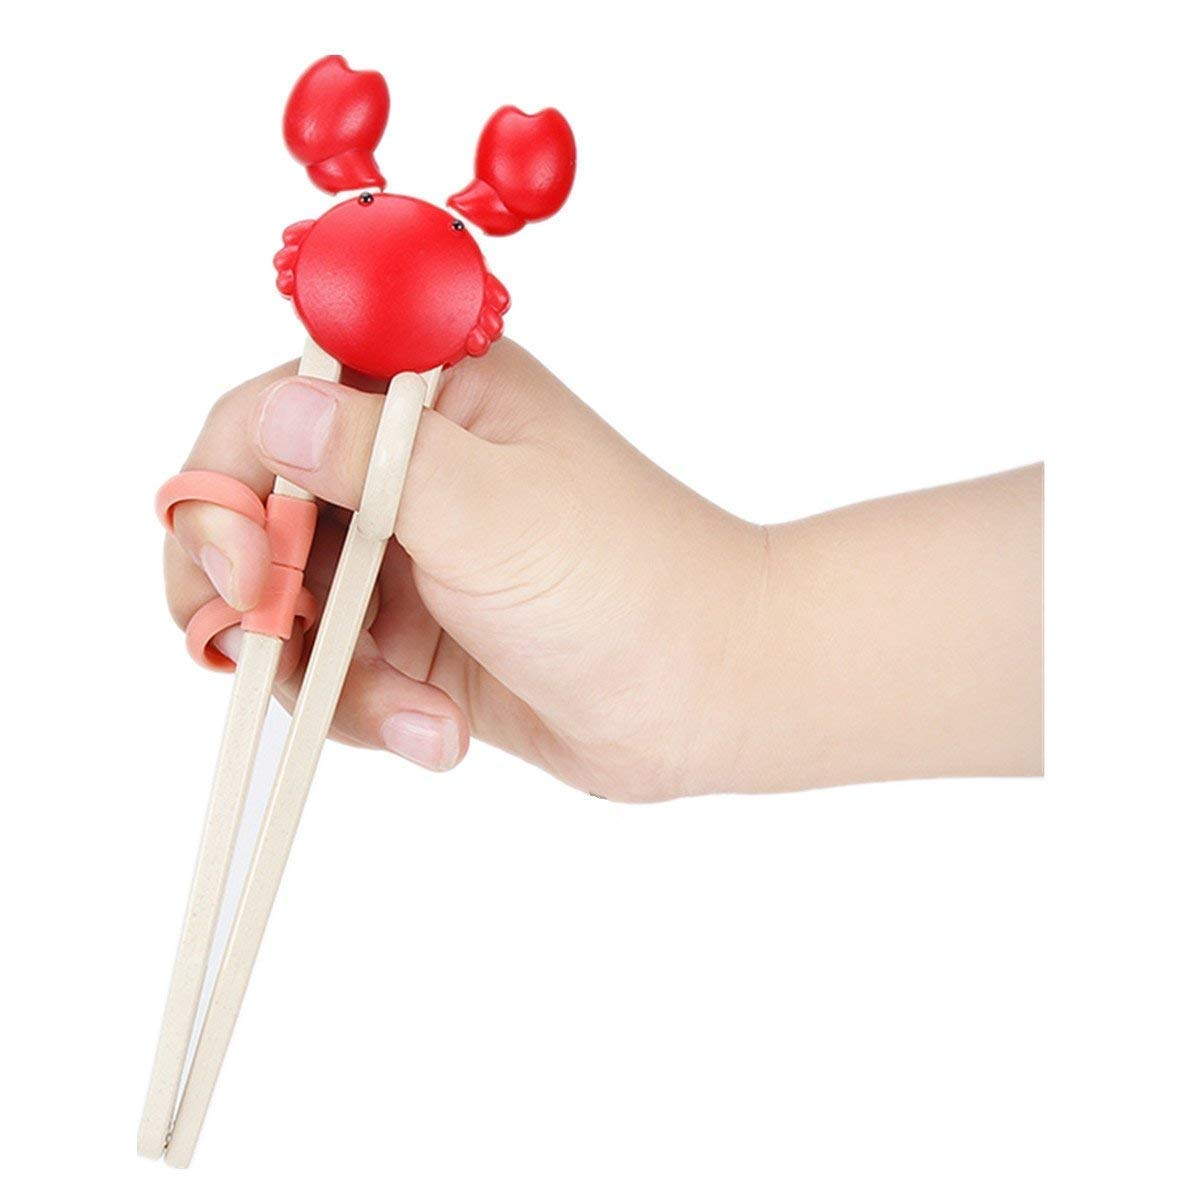 HOLYMOOD 1 Pair Rice Husks fully degradable Chopsticks Cute Crab Learning Training helper Chopsticks for kids Washable reusable Non-slip 19cm ecofriendly Baby kitchenware